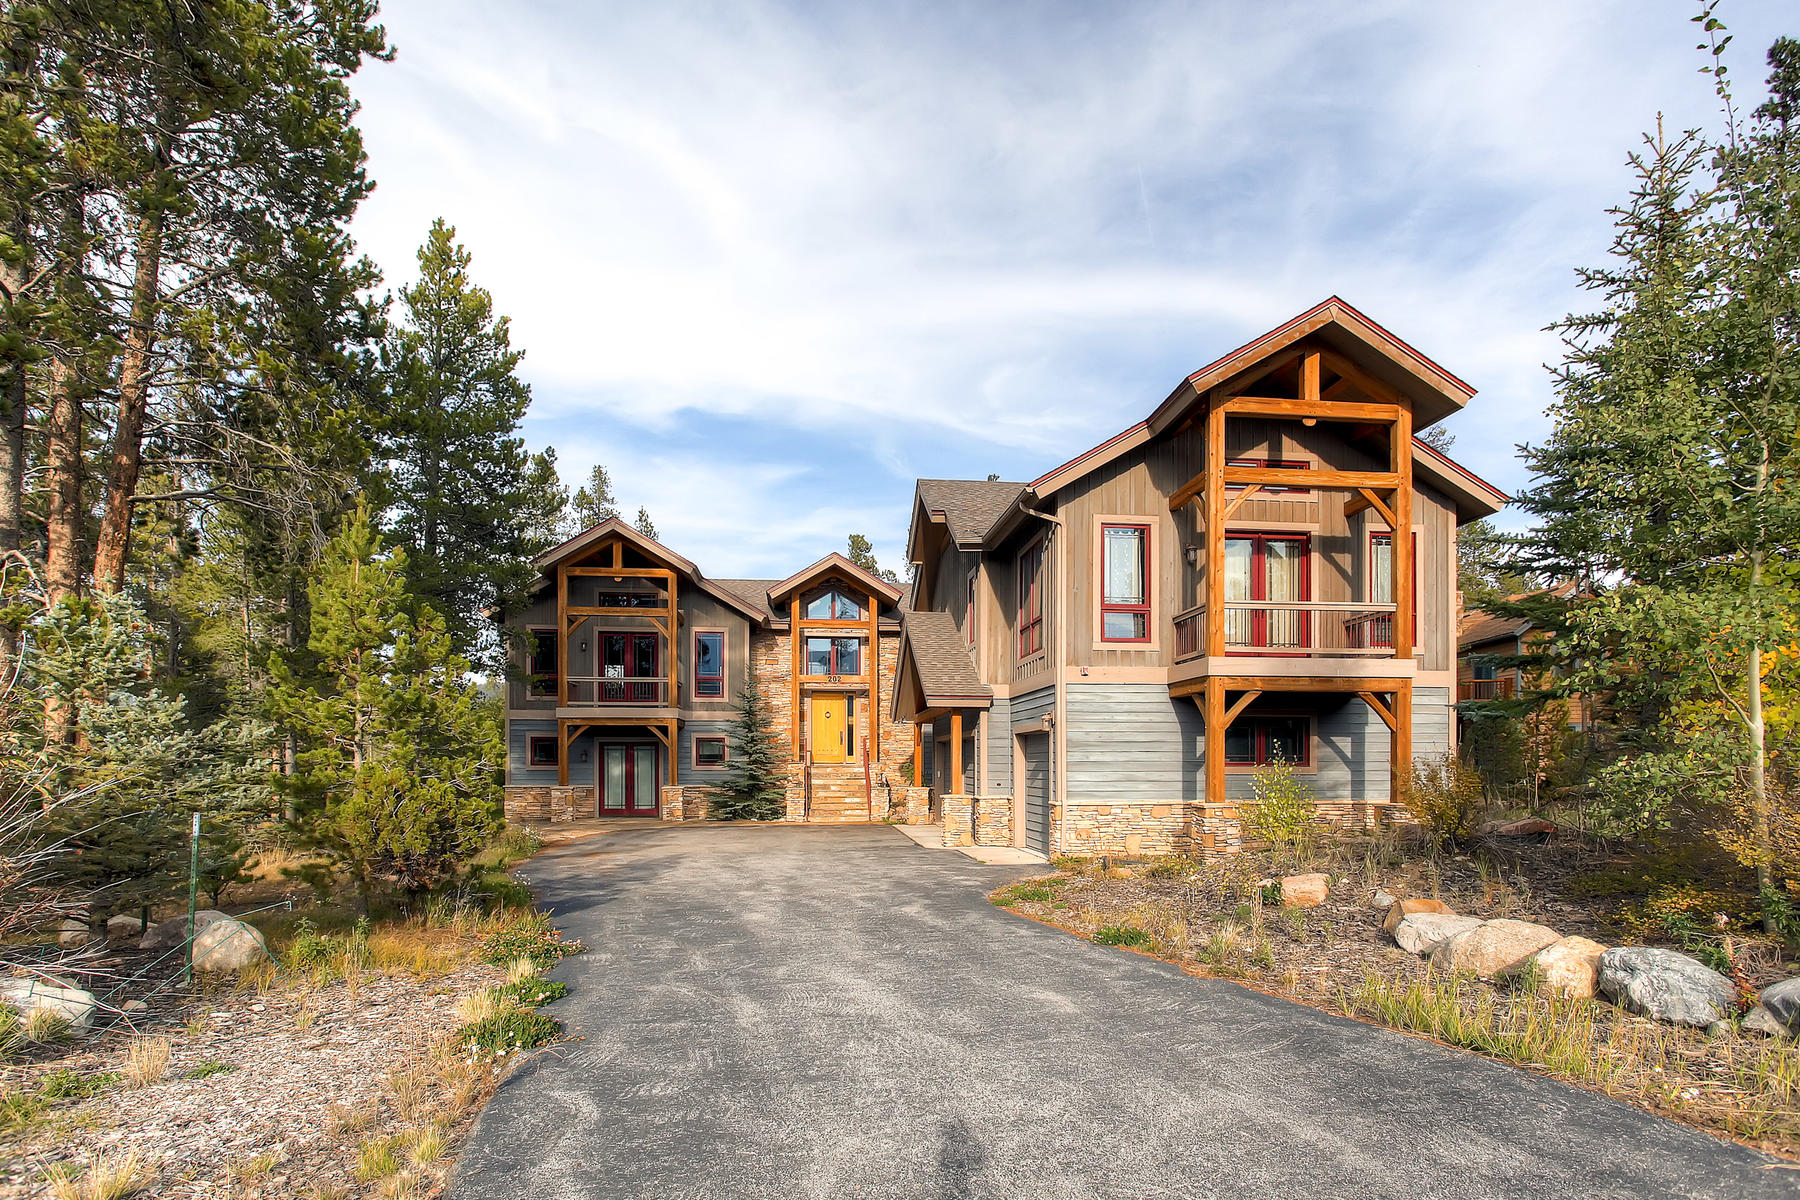 Single Family Home for Active at Highlands Golf Course Home 202 Marksberry Way Breckenridge, Colorado 80424 United States